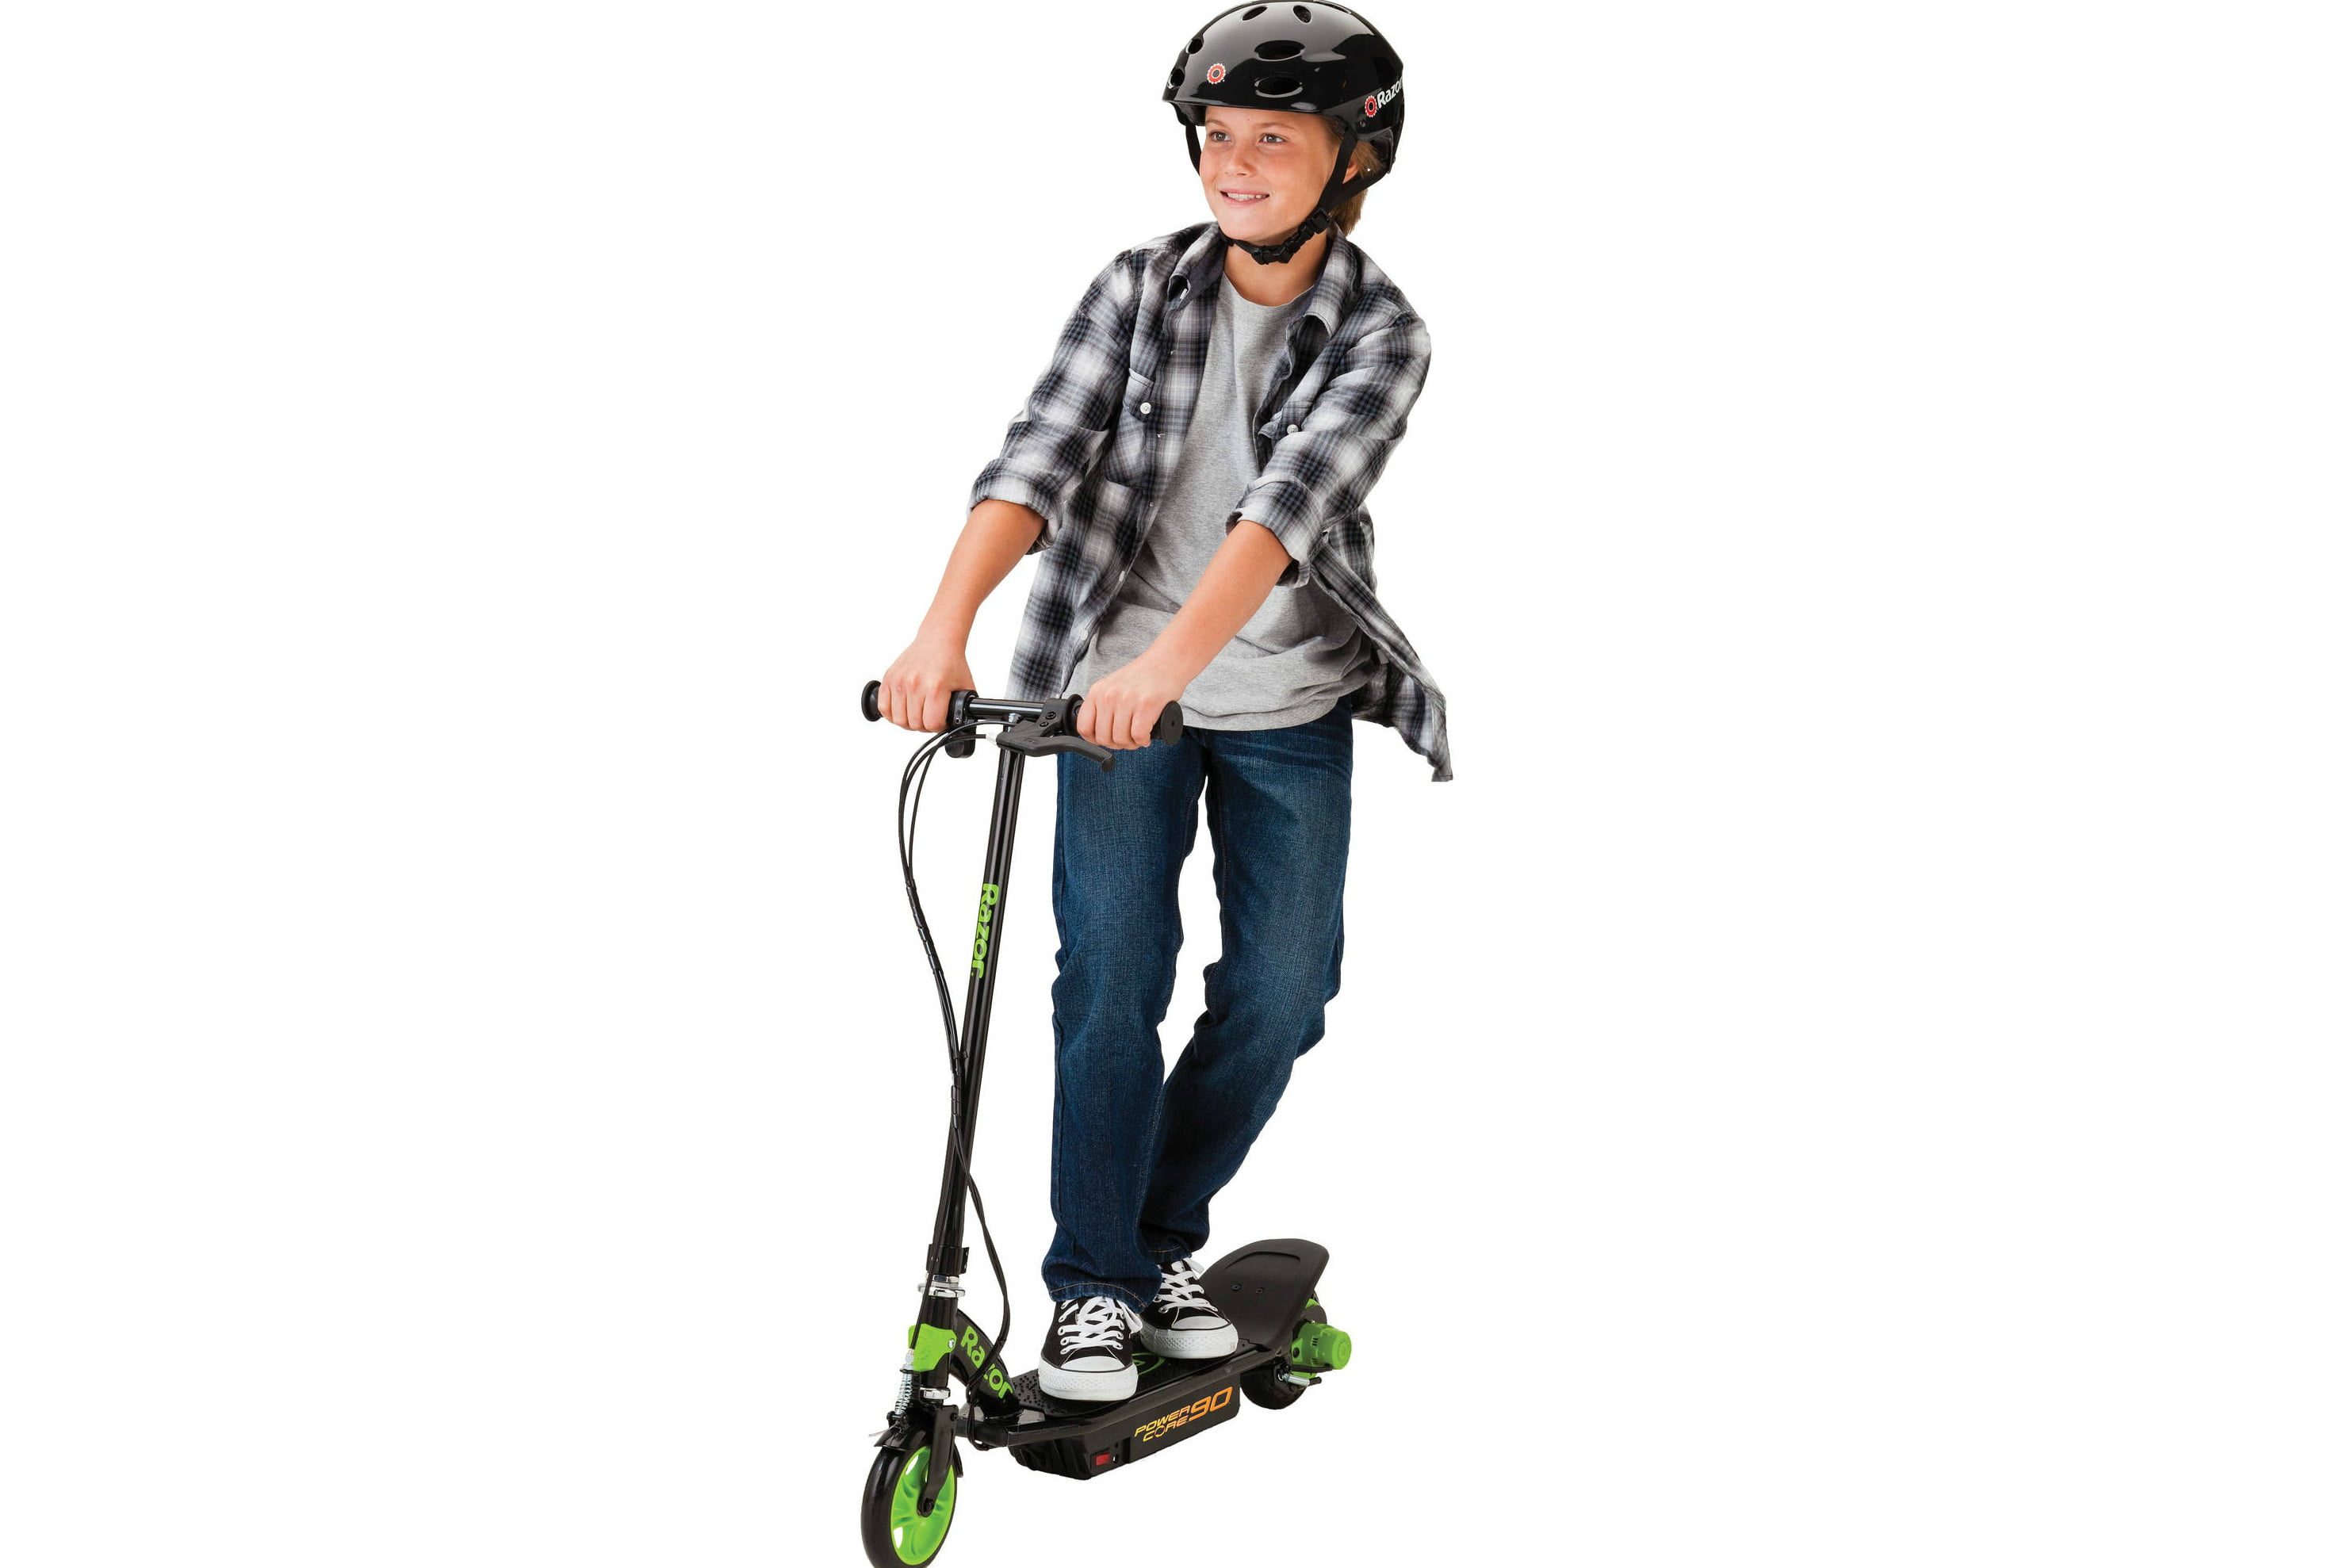 Walmart drops a cool discount on this Razor electric kids' scooter